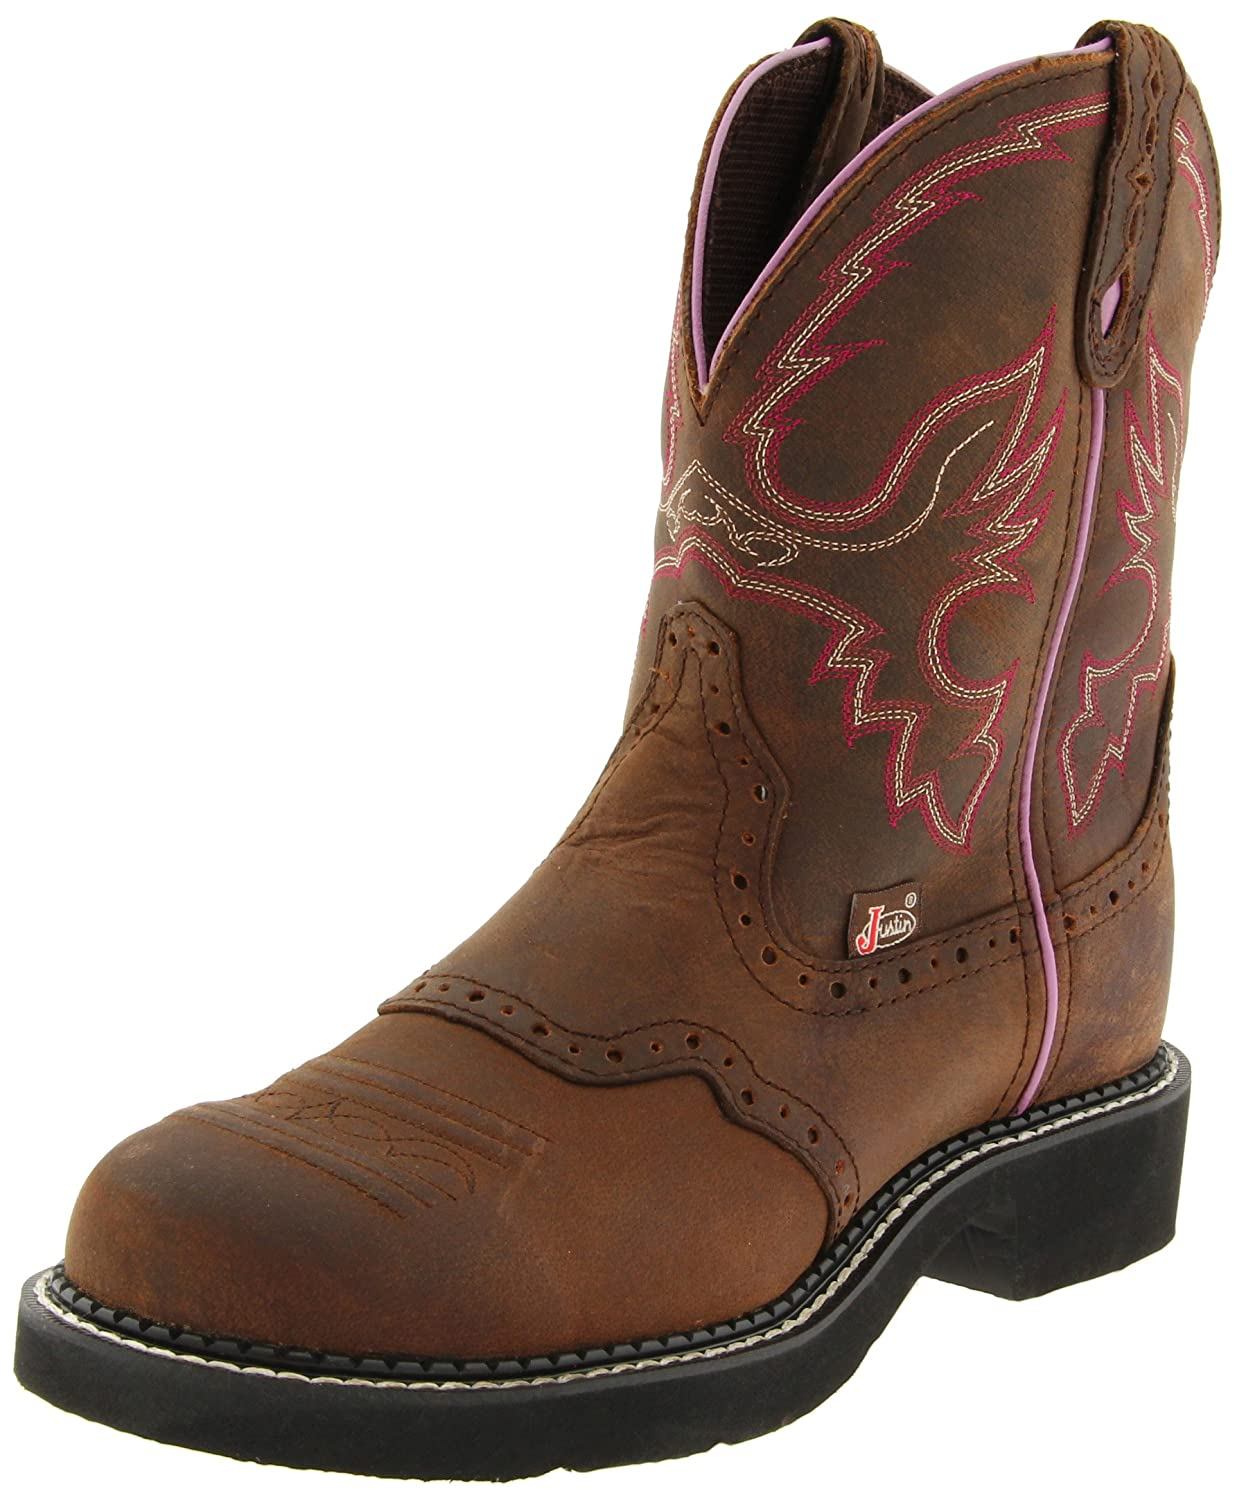 325e1e4d4f0 Justin Boots Women's Gypsy Collection Western Boot